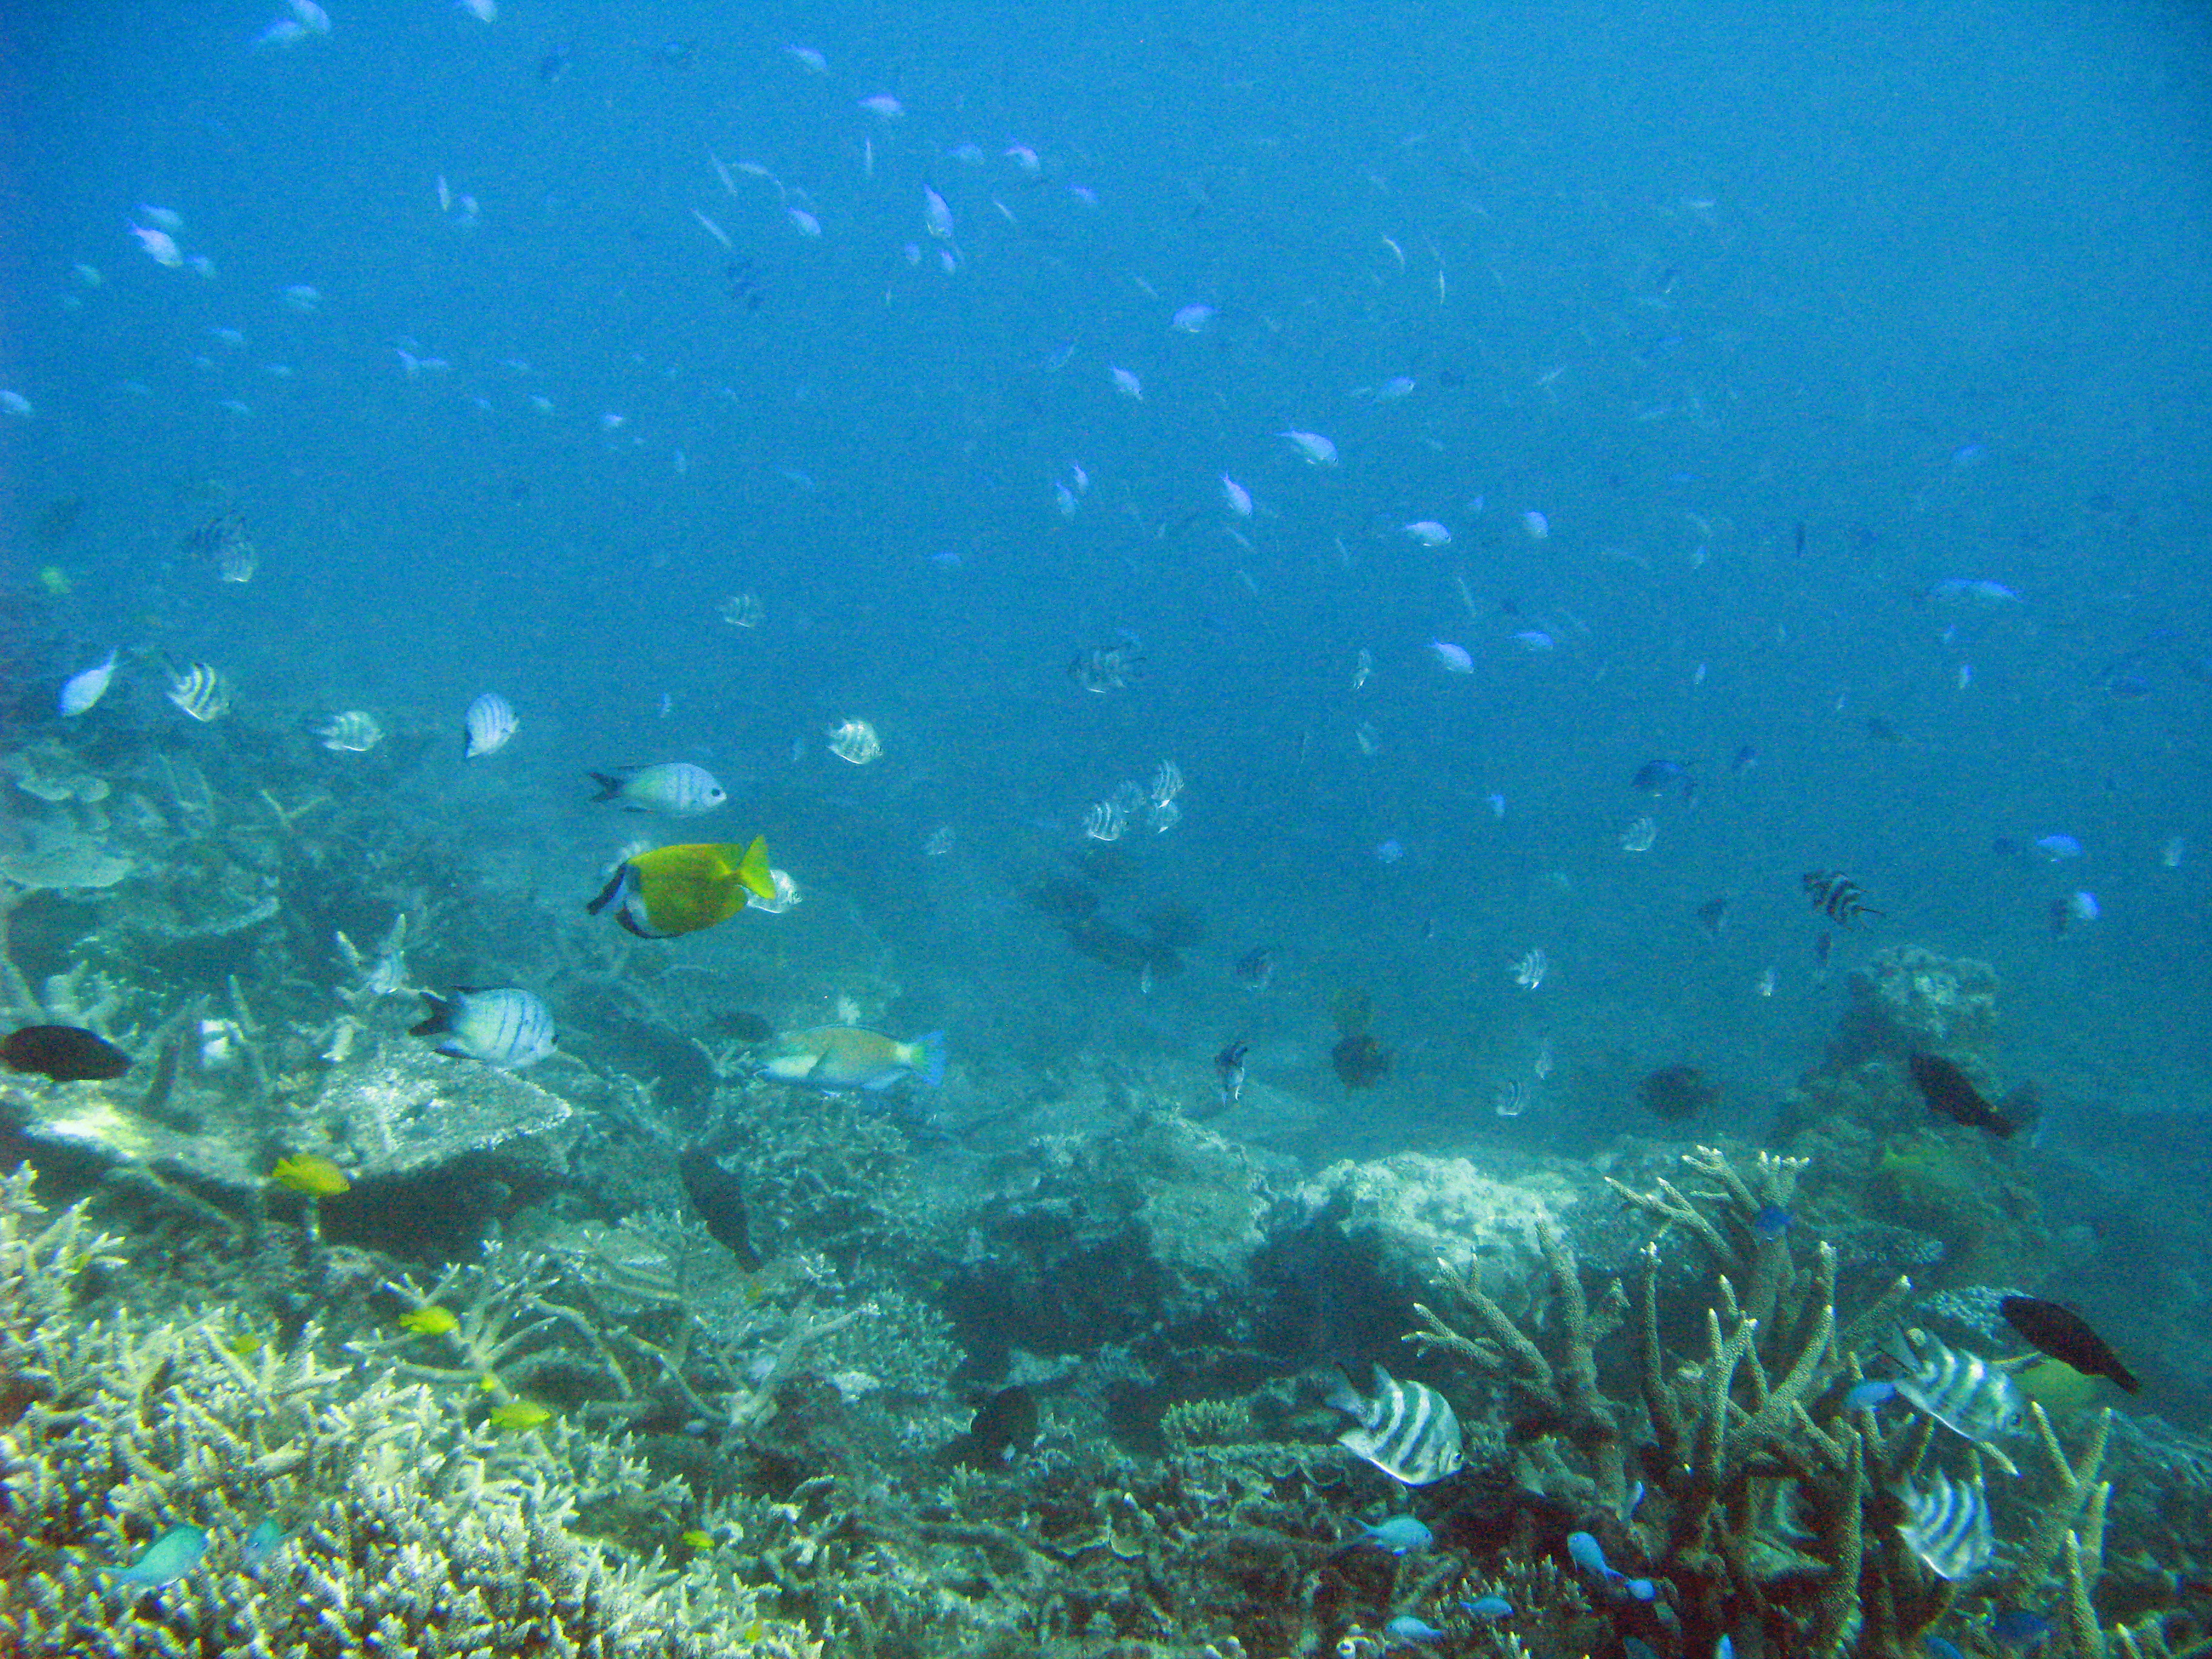 an underwater scene with corals and small reef fish